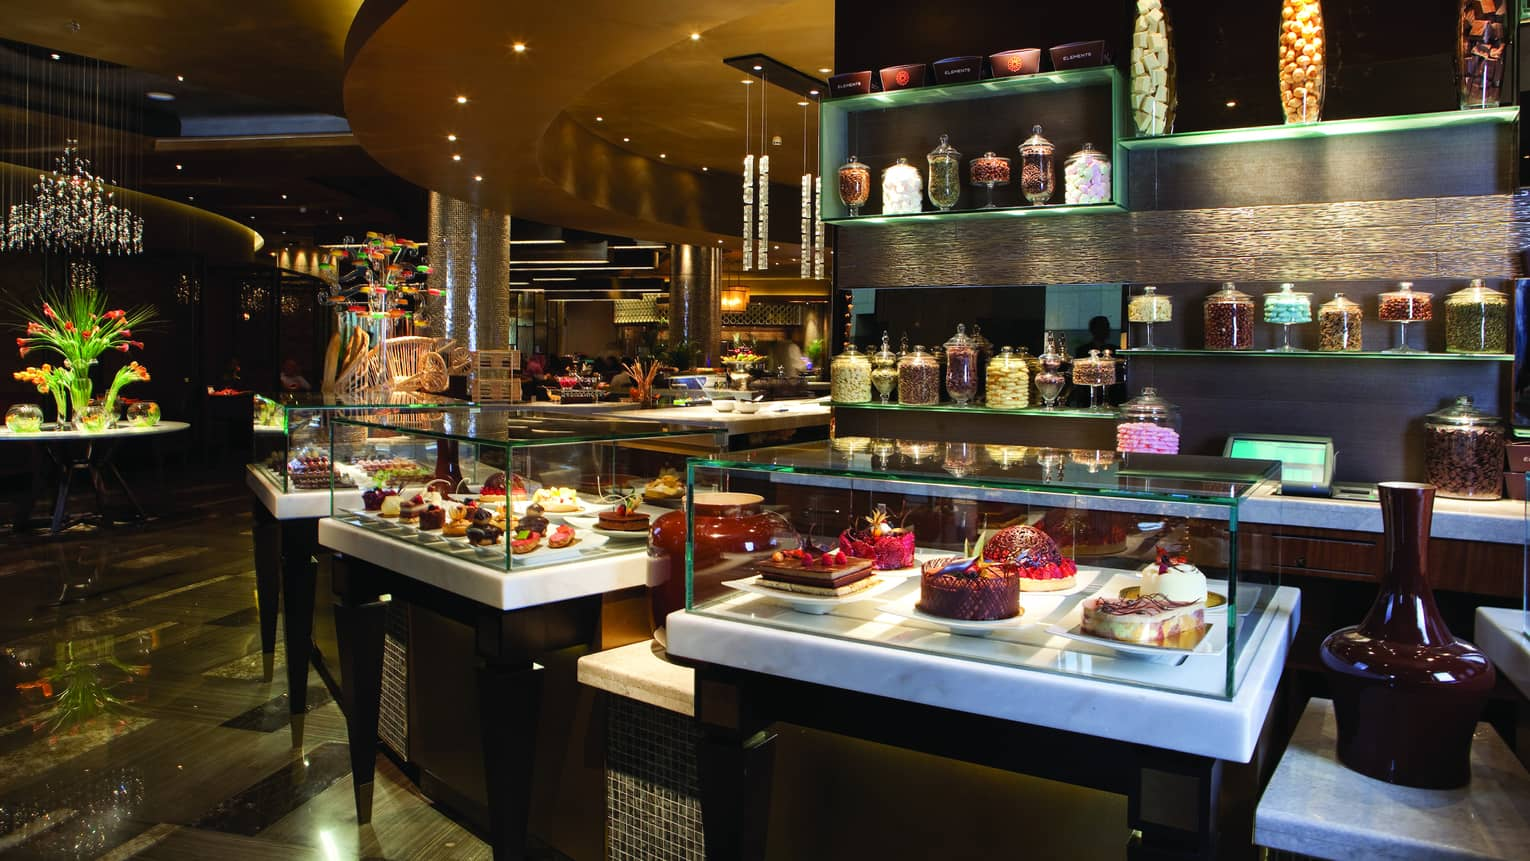 A restaurant featuring a buffet counter with displayed desserts and food